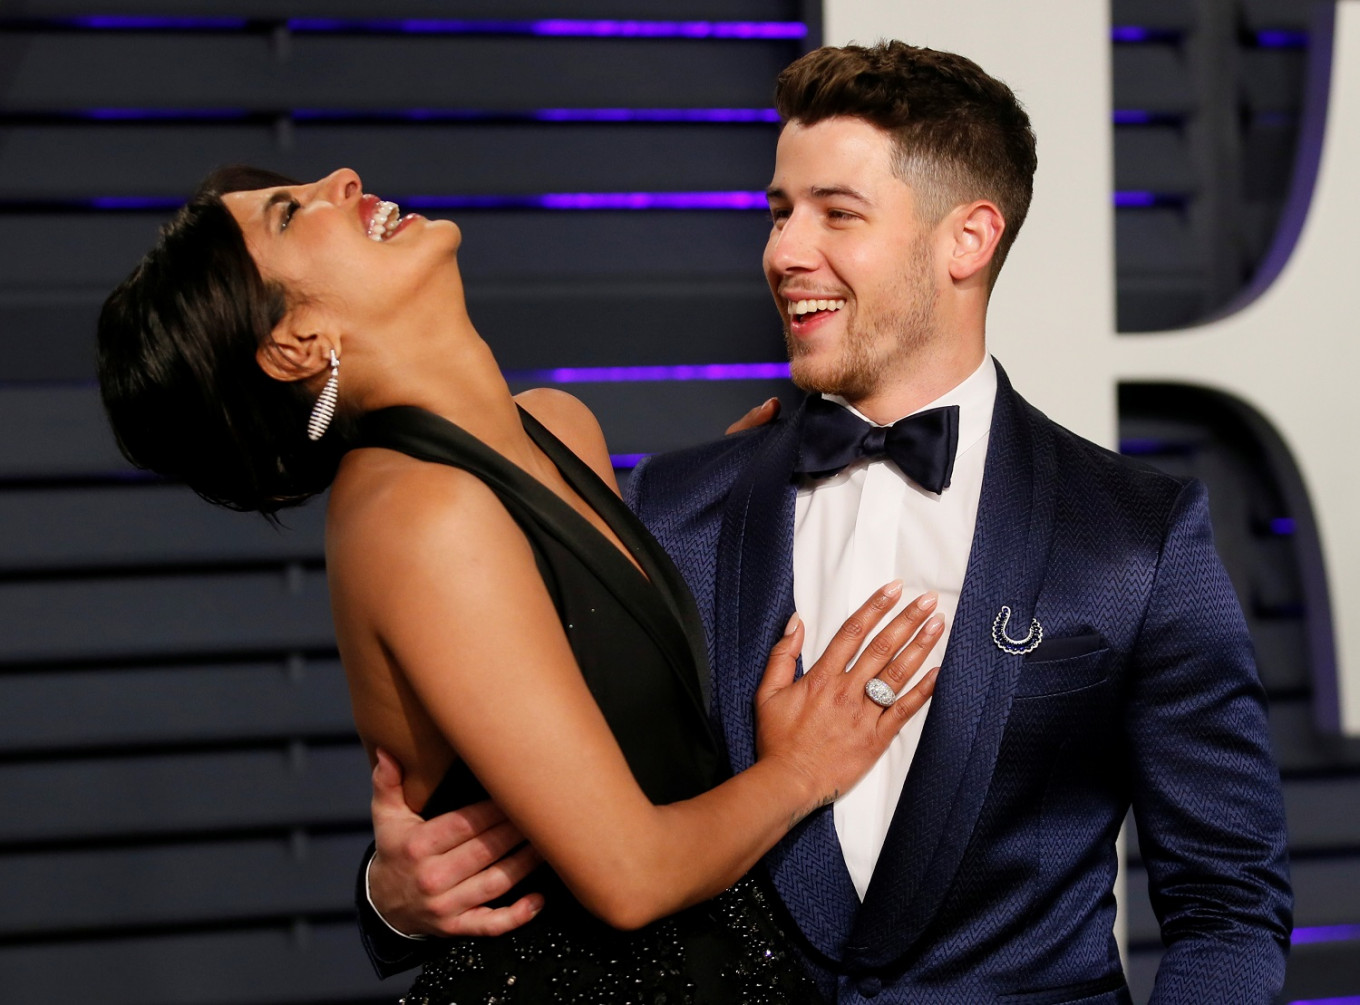 In a first, Priyanka Chopra and Nick Jonas both named People's best dressed